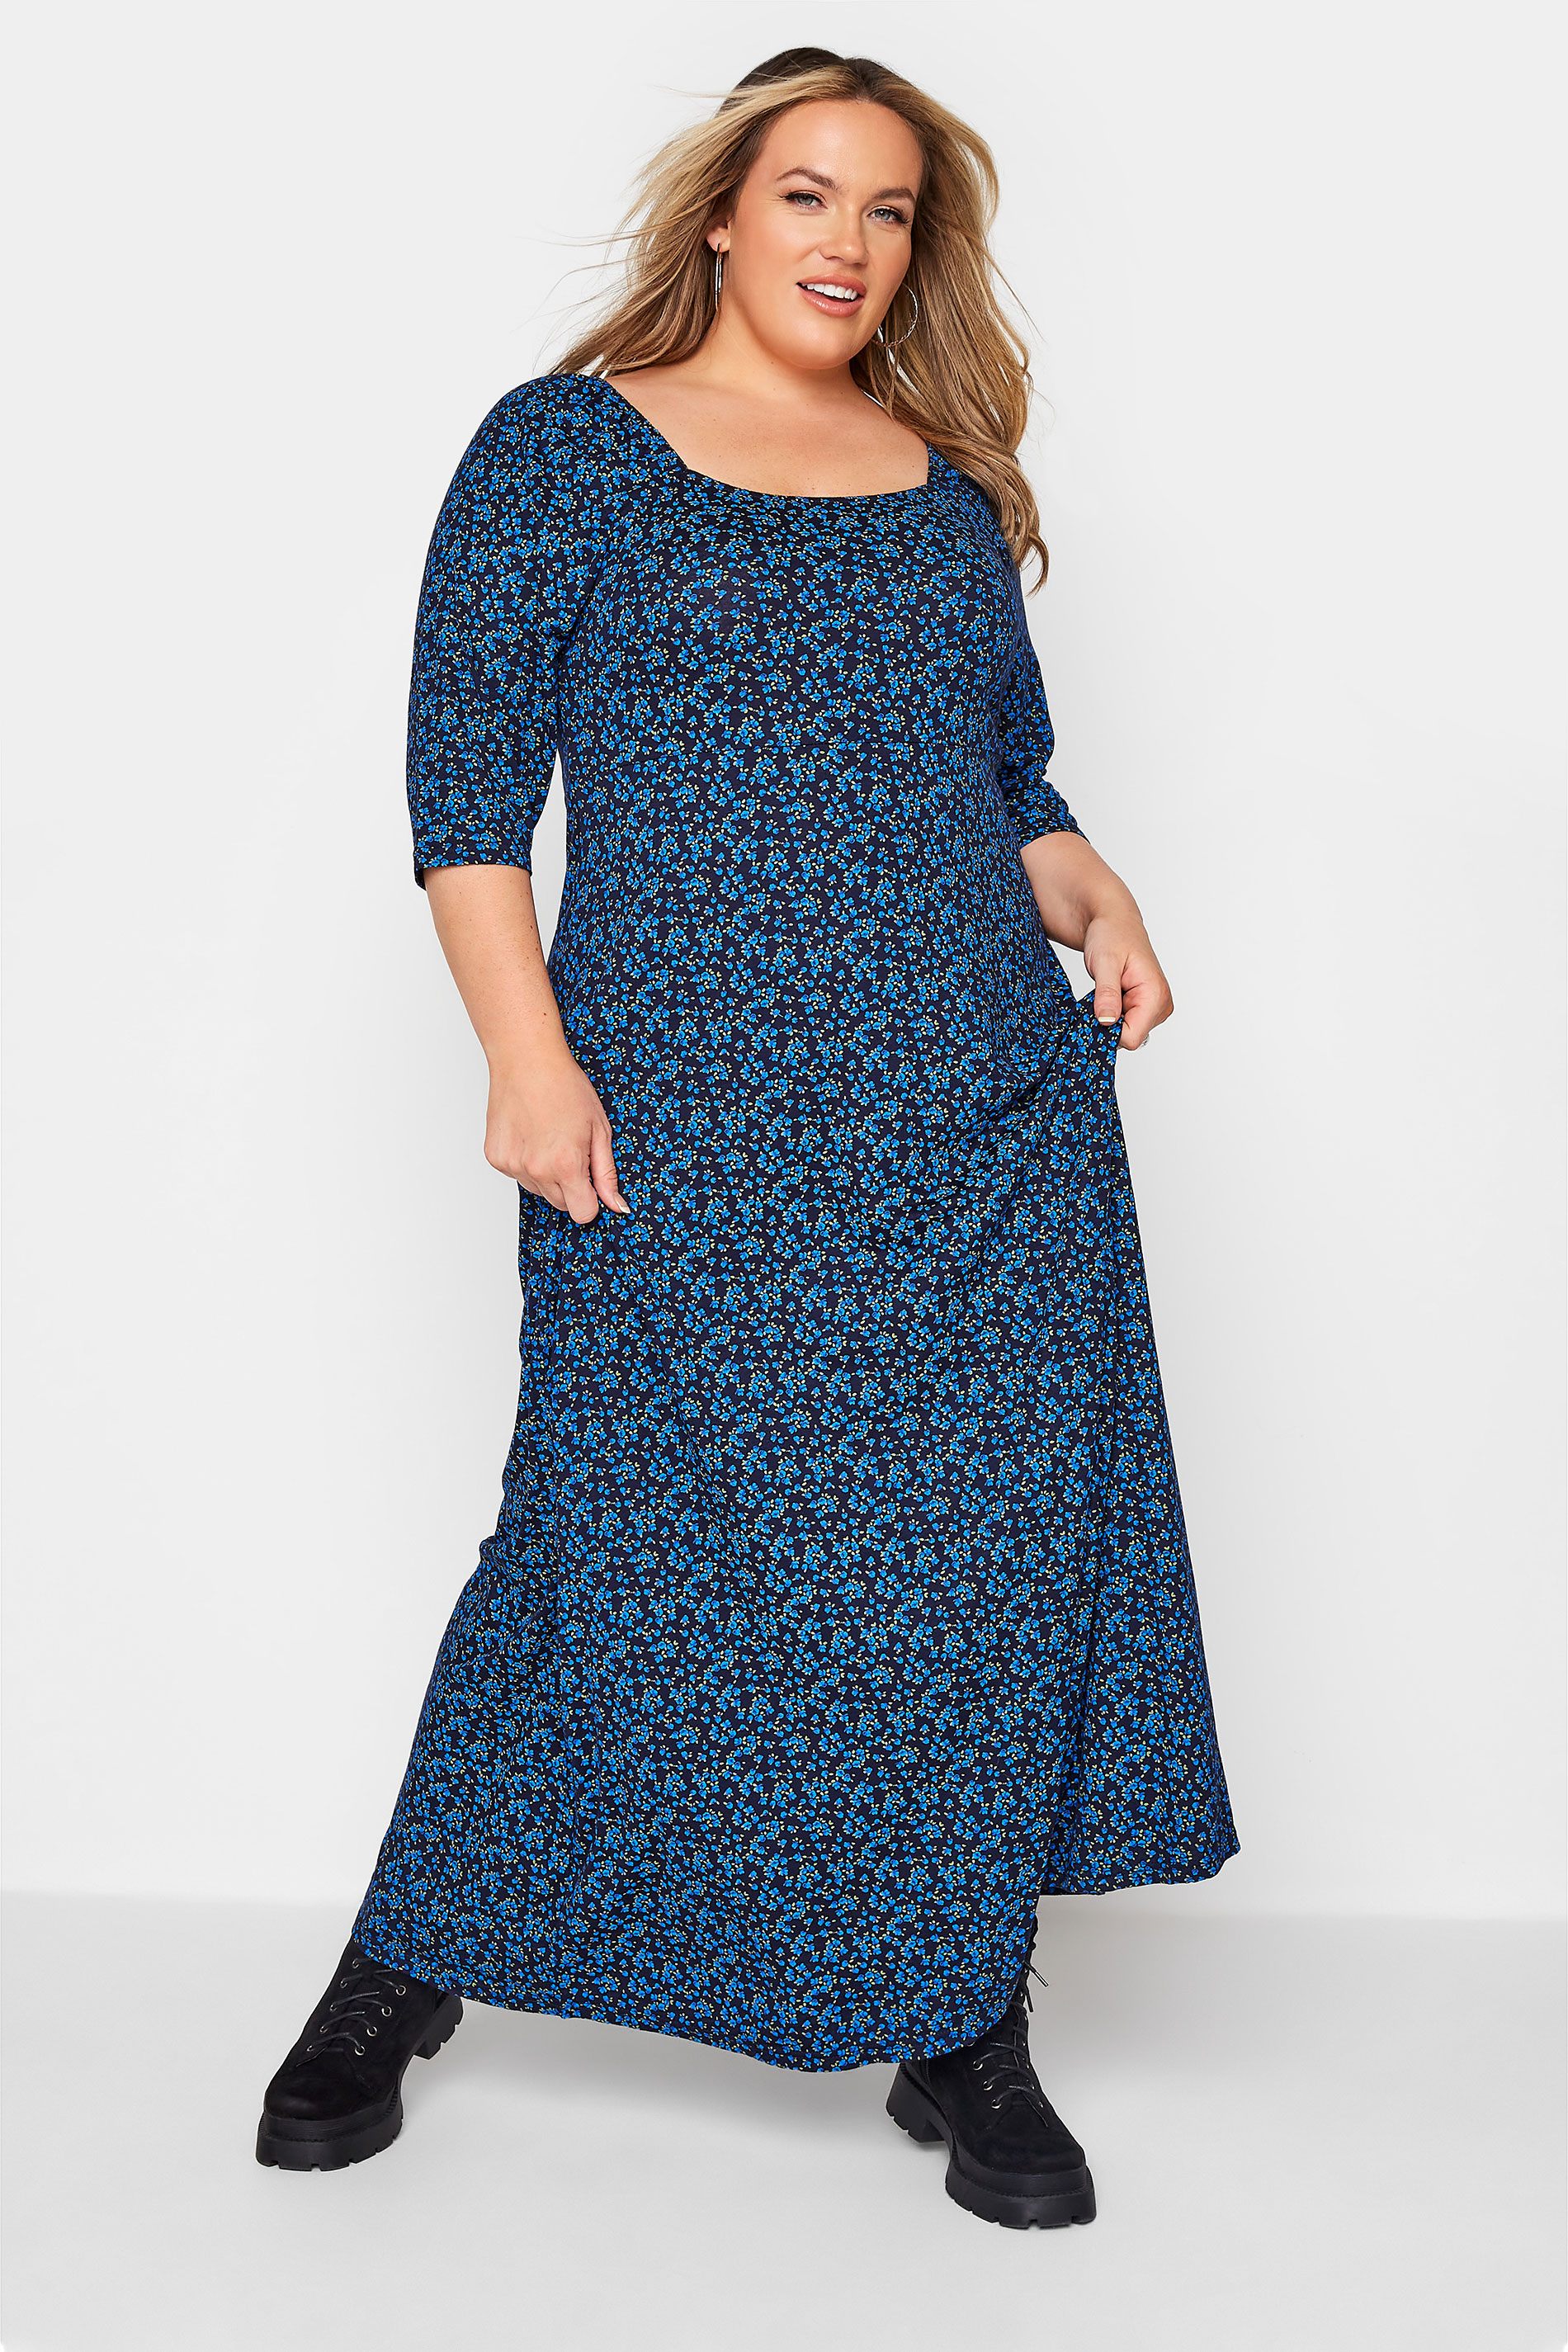 LIMITED COLLECTION Cobalt Blue Ditsy Maxi Dress_A.jpg